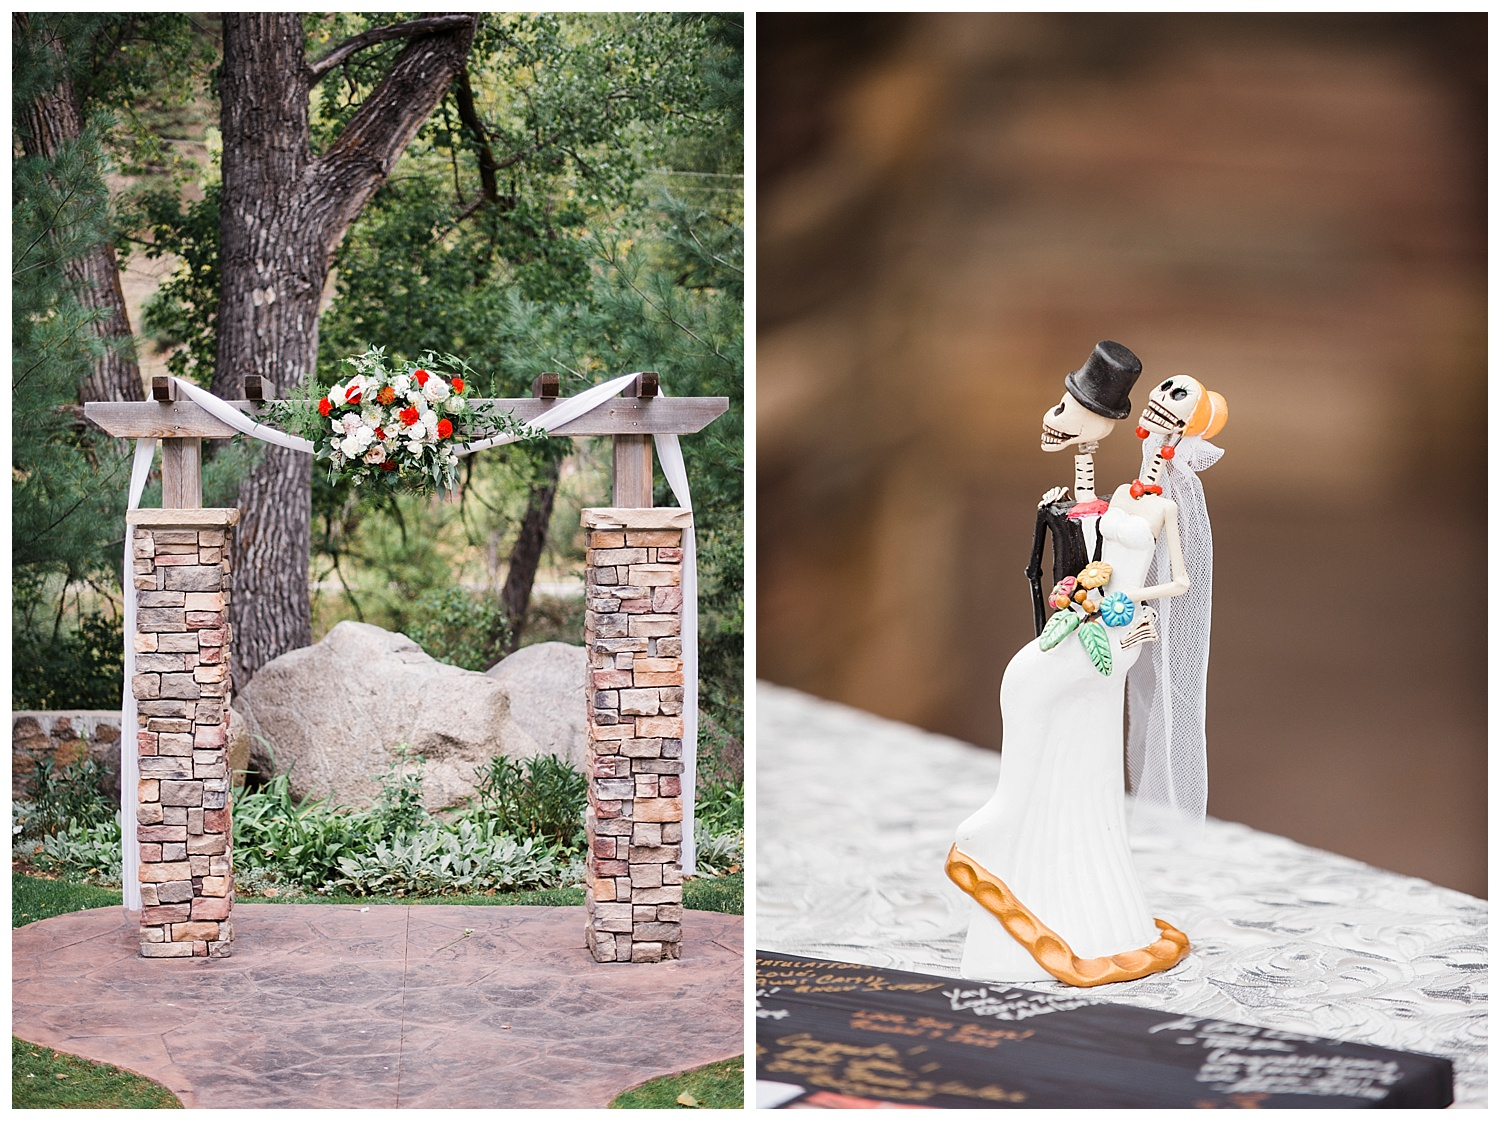 Wedgewood_Boulder_Creek_Wedding_Venue_Colorado_Photographer_Apollo_Fields_027.jpg